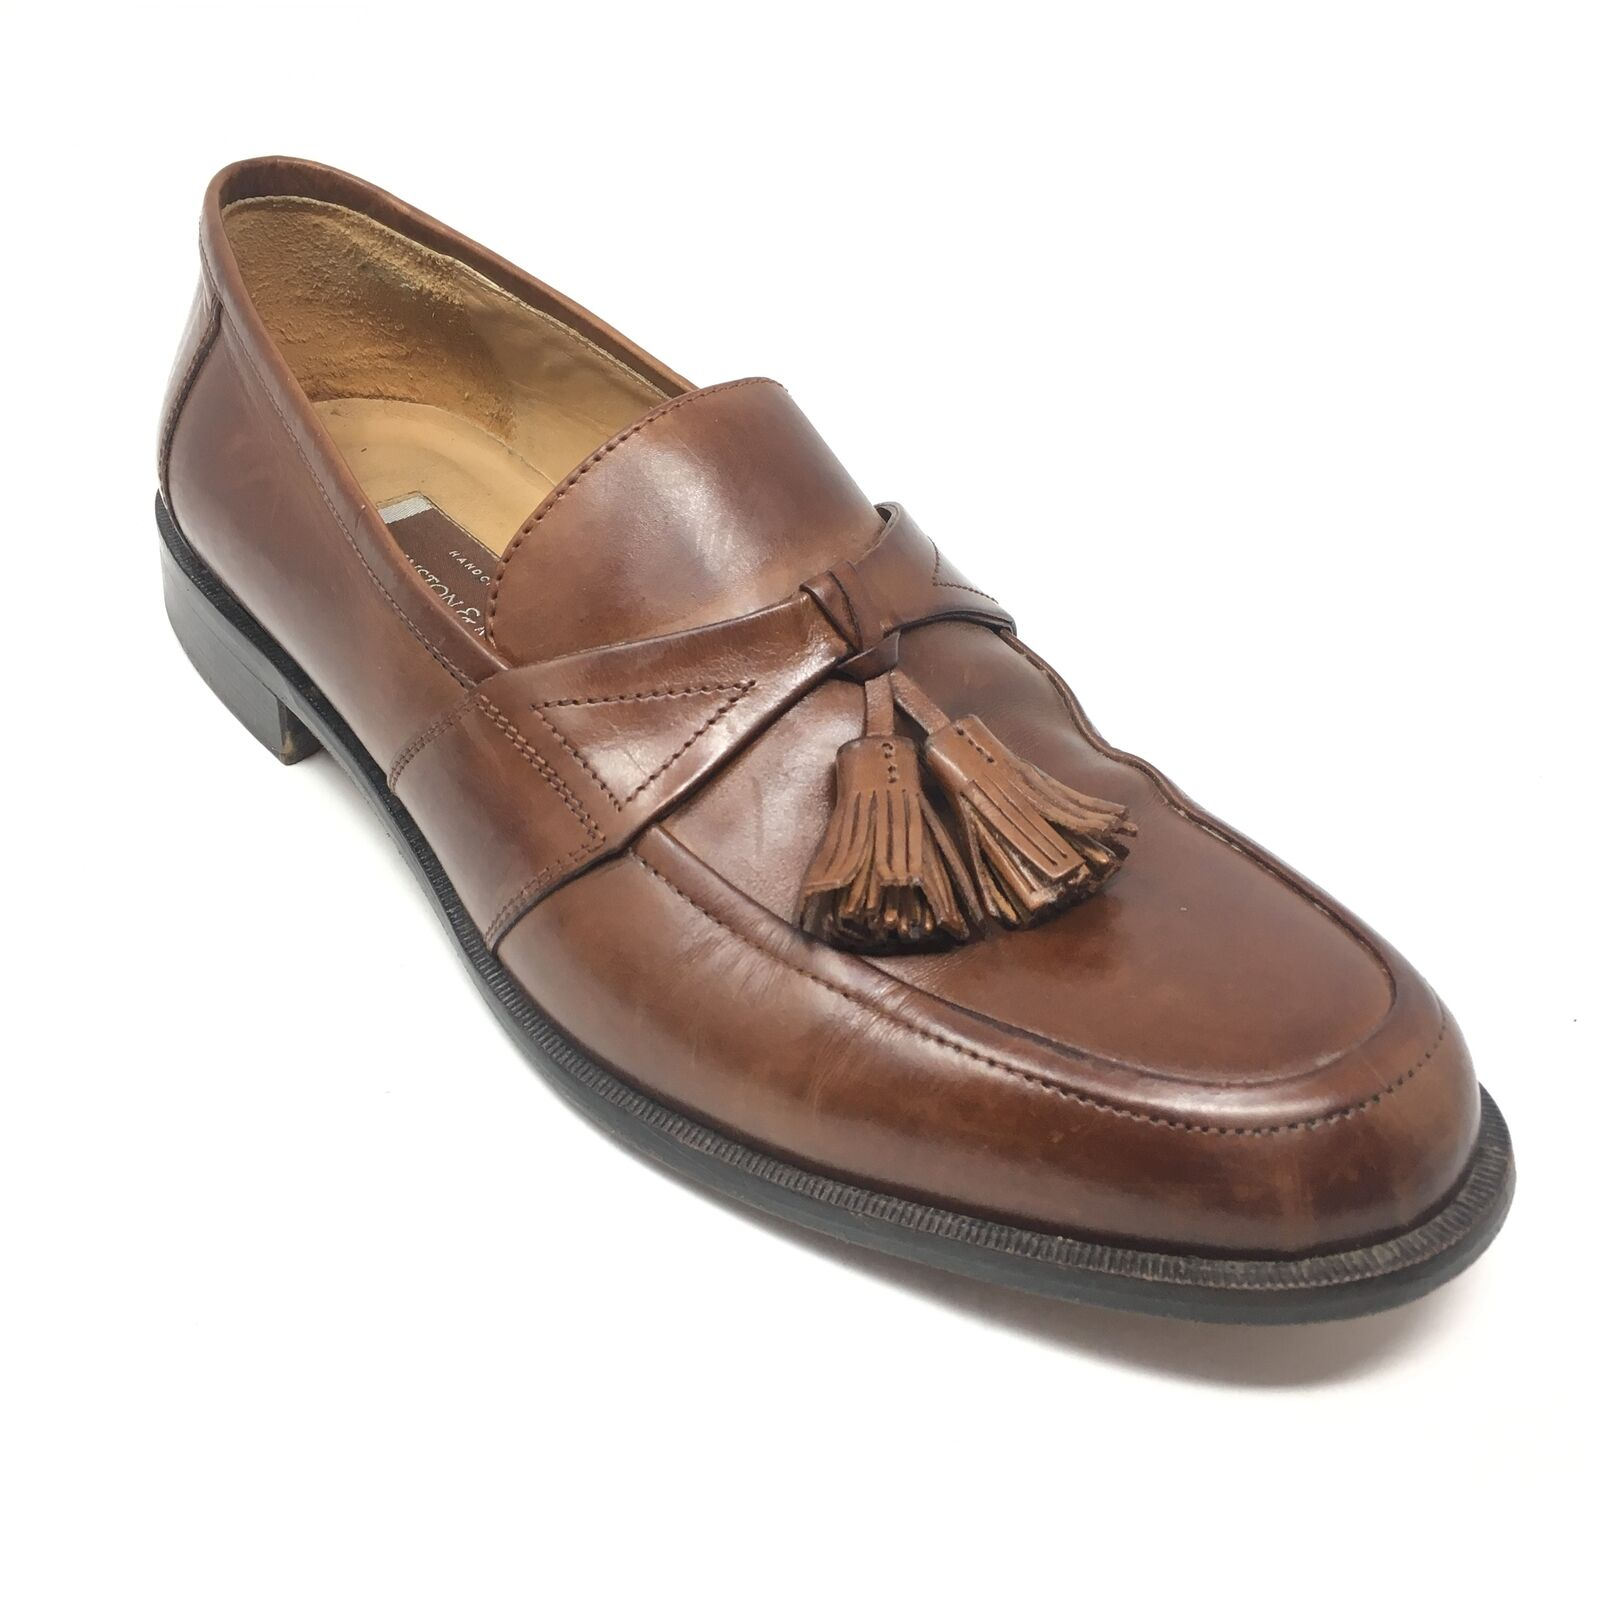 Men's Johnston & Murphy Loafers shoes Size 10M Brown Leather Handcrafted L4